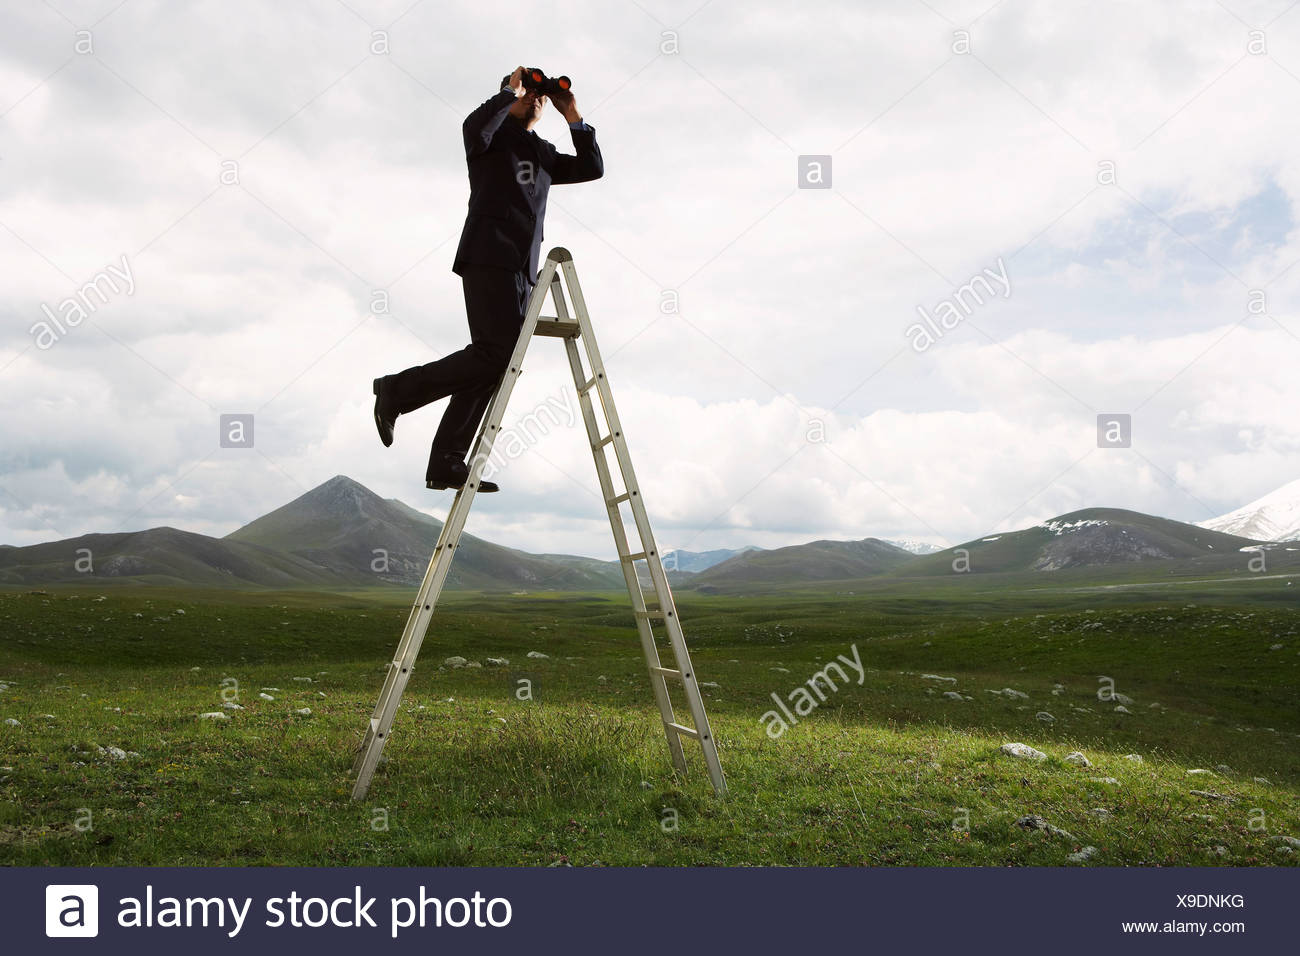 Businessman Looking into The Distance - Stock Image